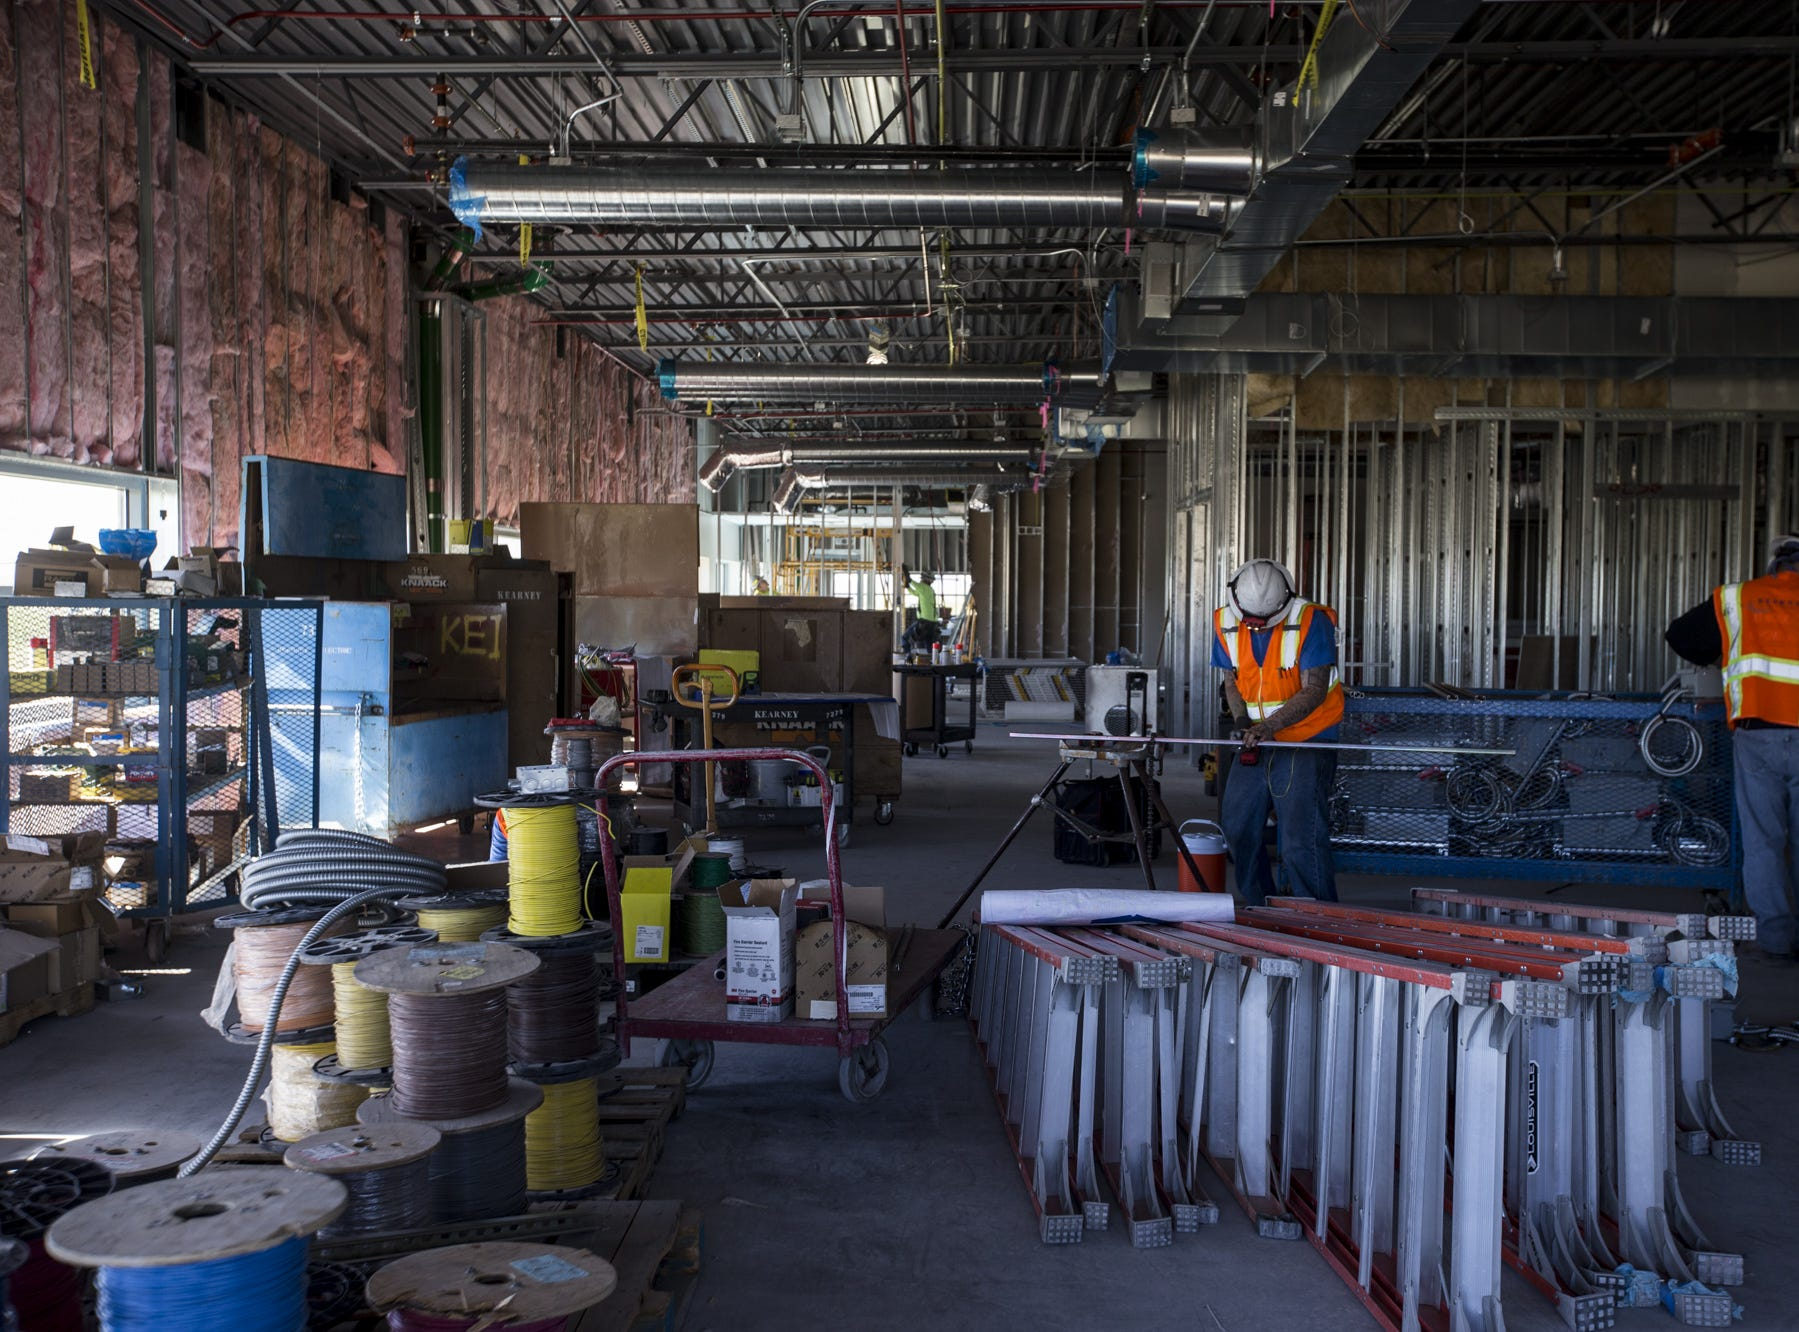 Construction crews work on administrative offices on Friday, March 29, 2019, at Mayo Clinic in Phoenix.